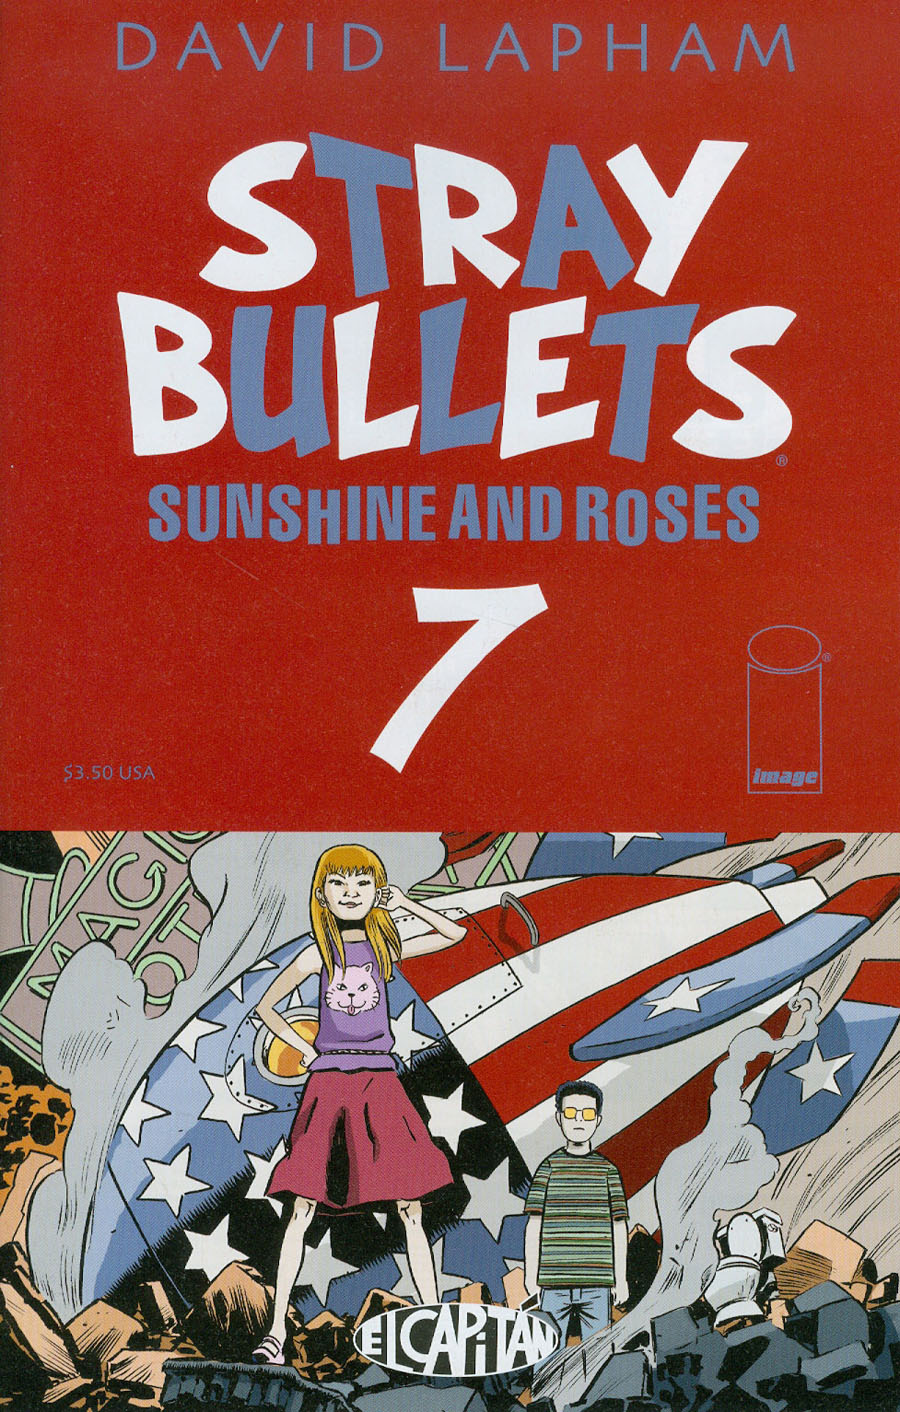 Stray Bullets Sunshine And Roses #7